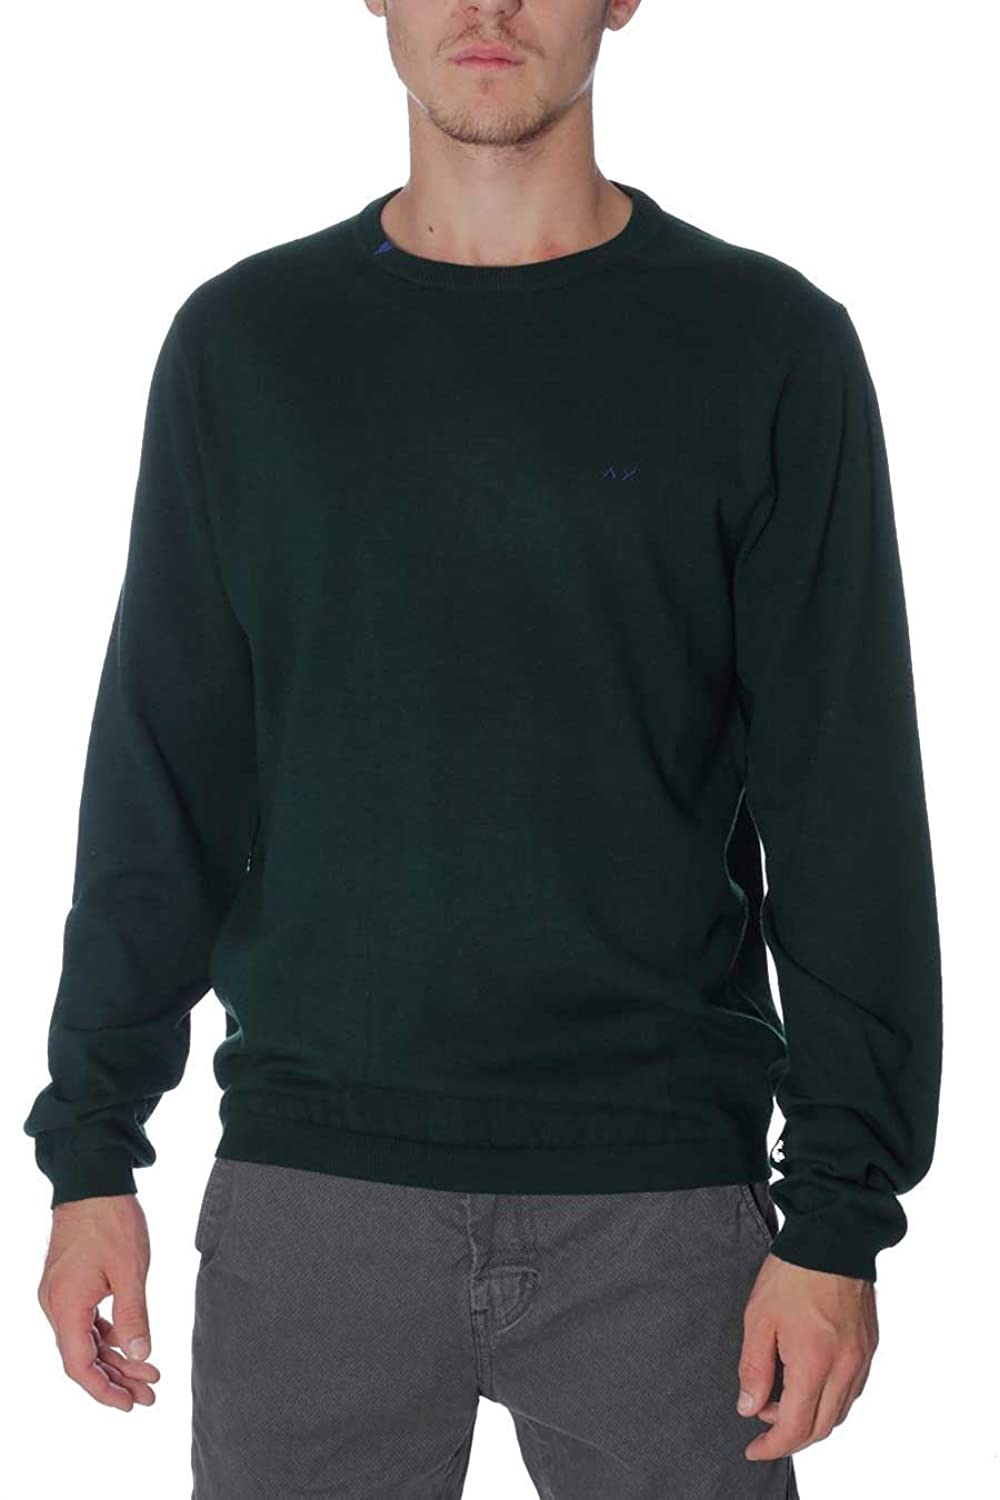 Sun 68 Men's Jumper One size